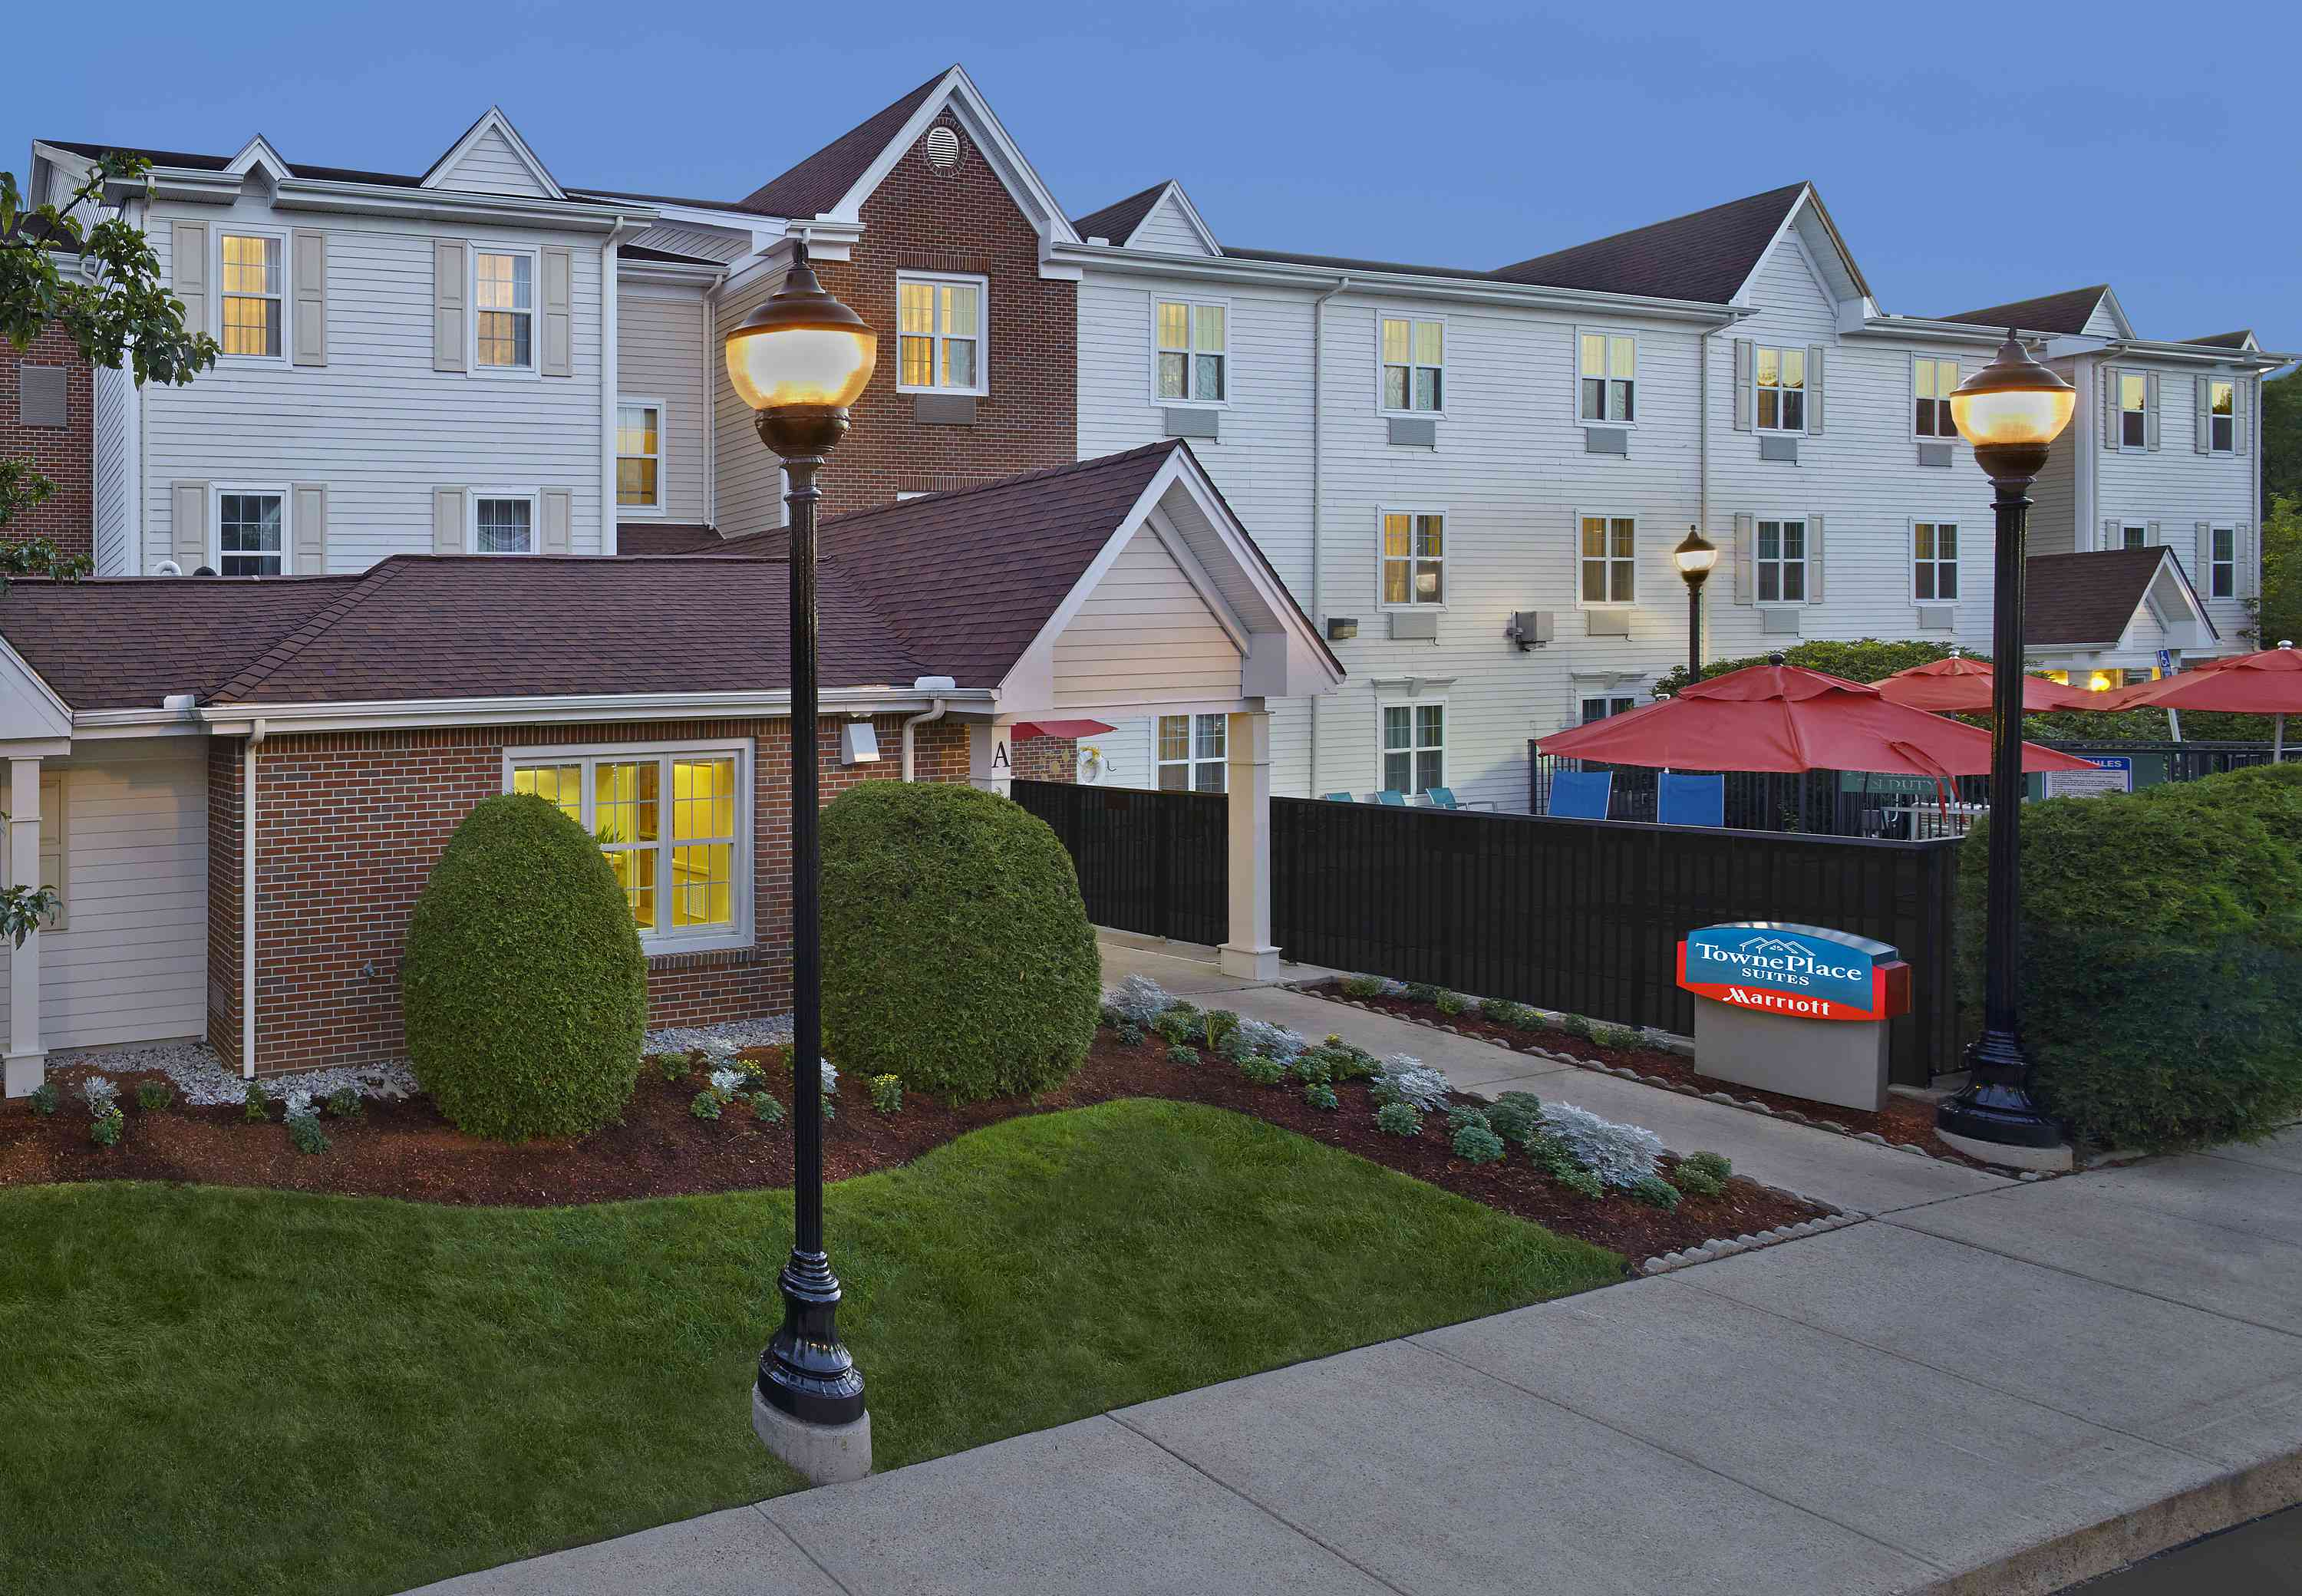 TownePlace Suites by Marriott Boston Tewksbury/Andover image 6